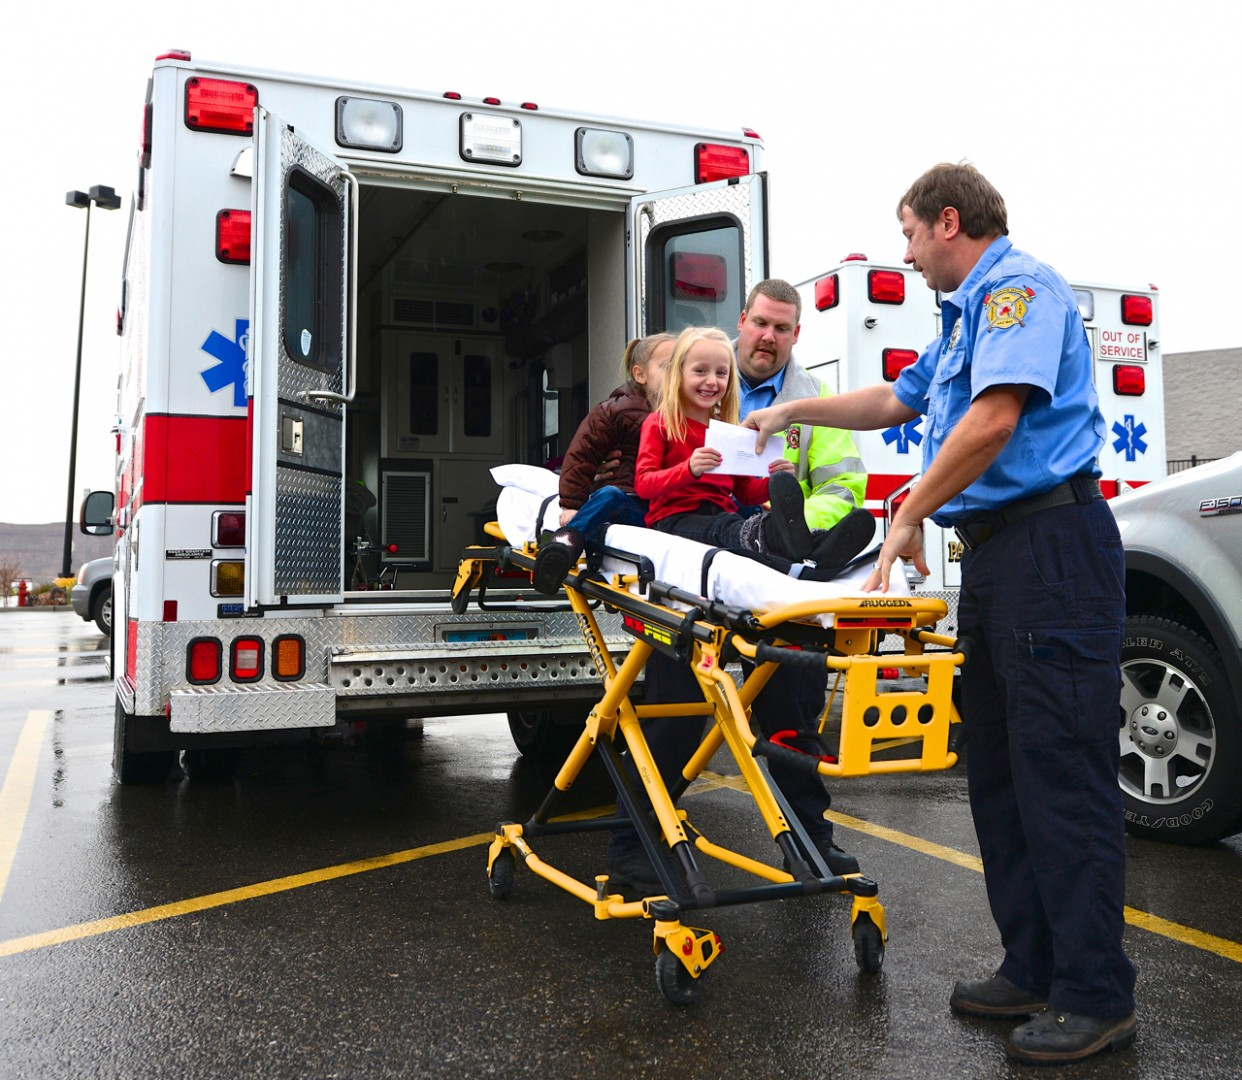 The Barlow sisters arrive at Hurricane Wal-Mart via Hurricane Ambulance for Shop with a Cop event  2012.